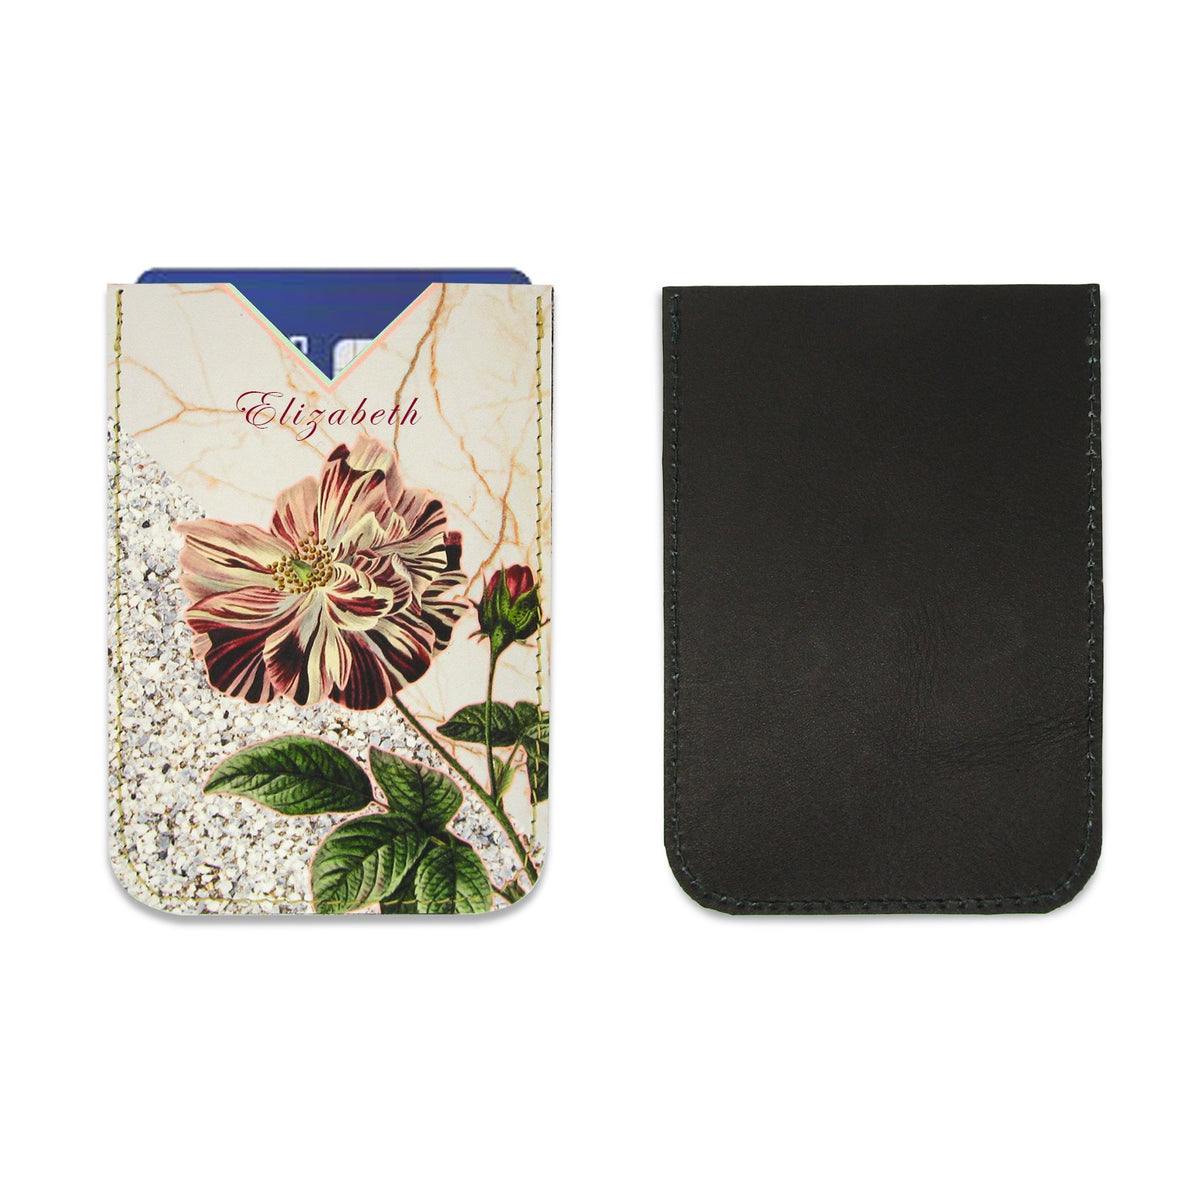 Leather Card Holder / Phone Sticker Wallet Pocket - Wild Rose Wallet Tovi Sorga Standard Card Holder With personalisation Pink